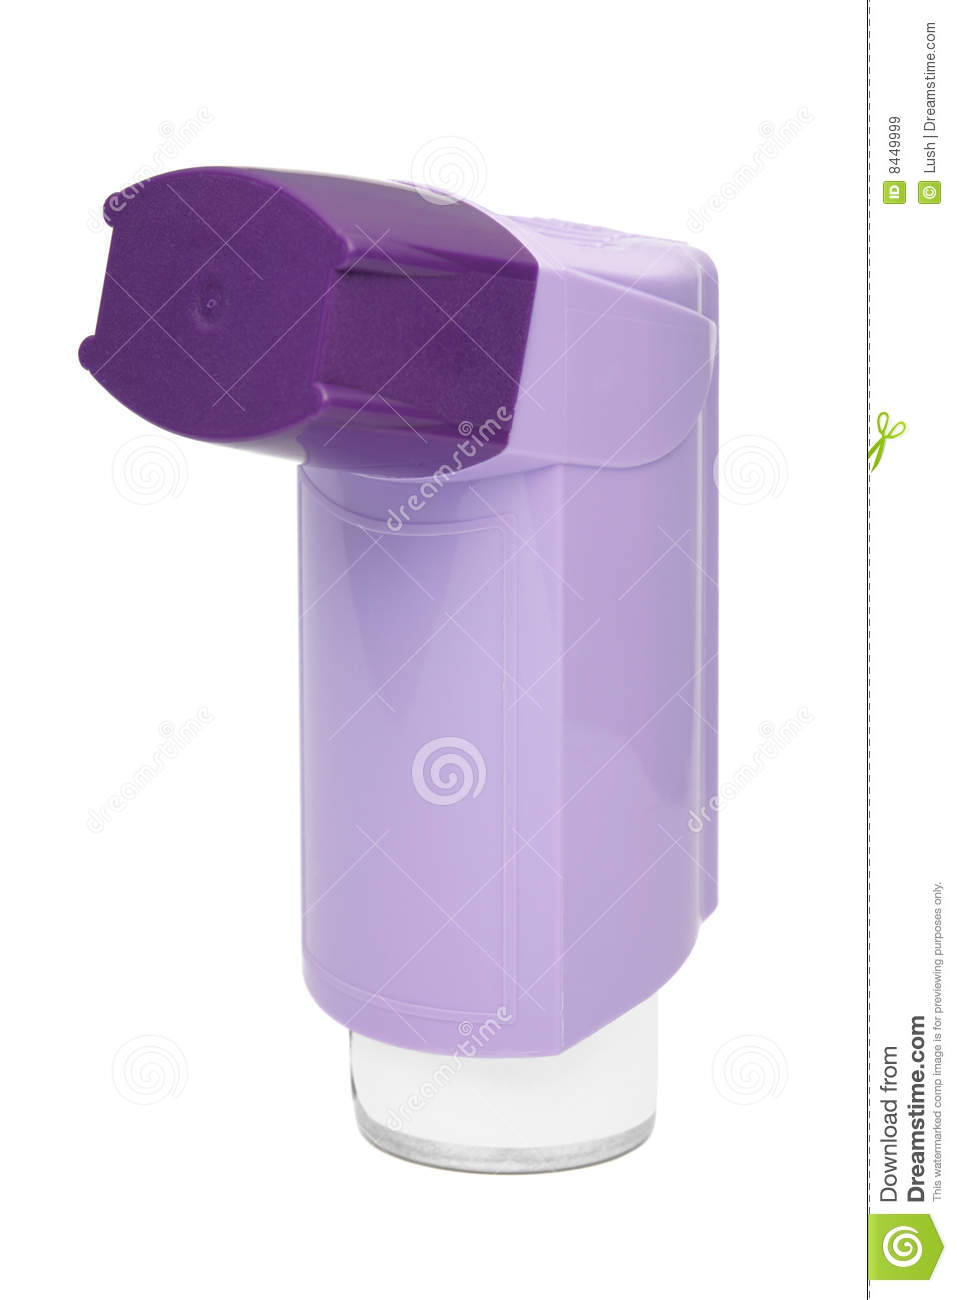 Purple Asthma Inhaler Royalty Free Stock Images - Image: 8449999